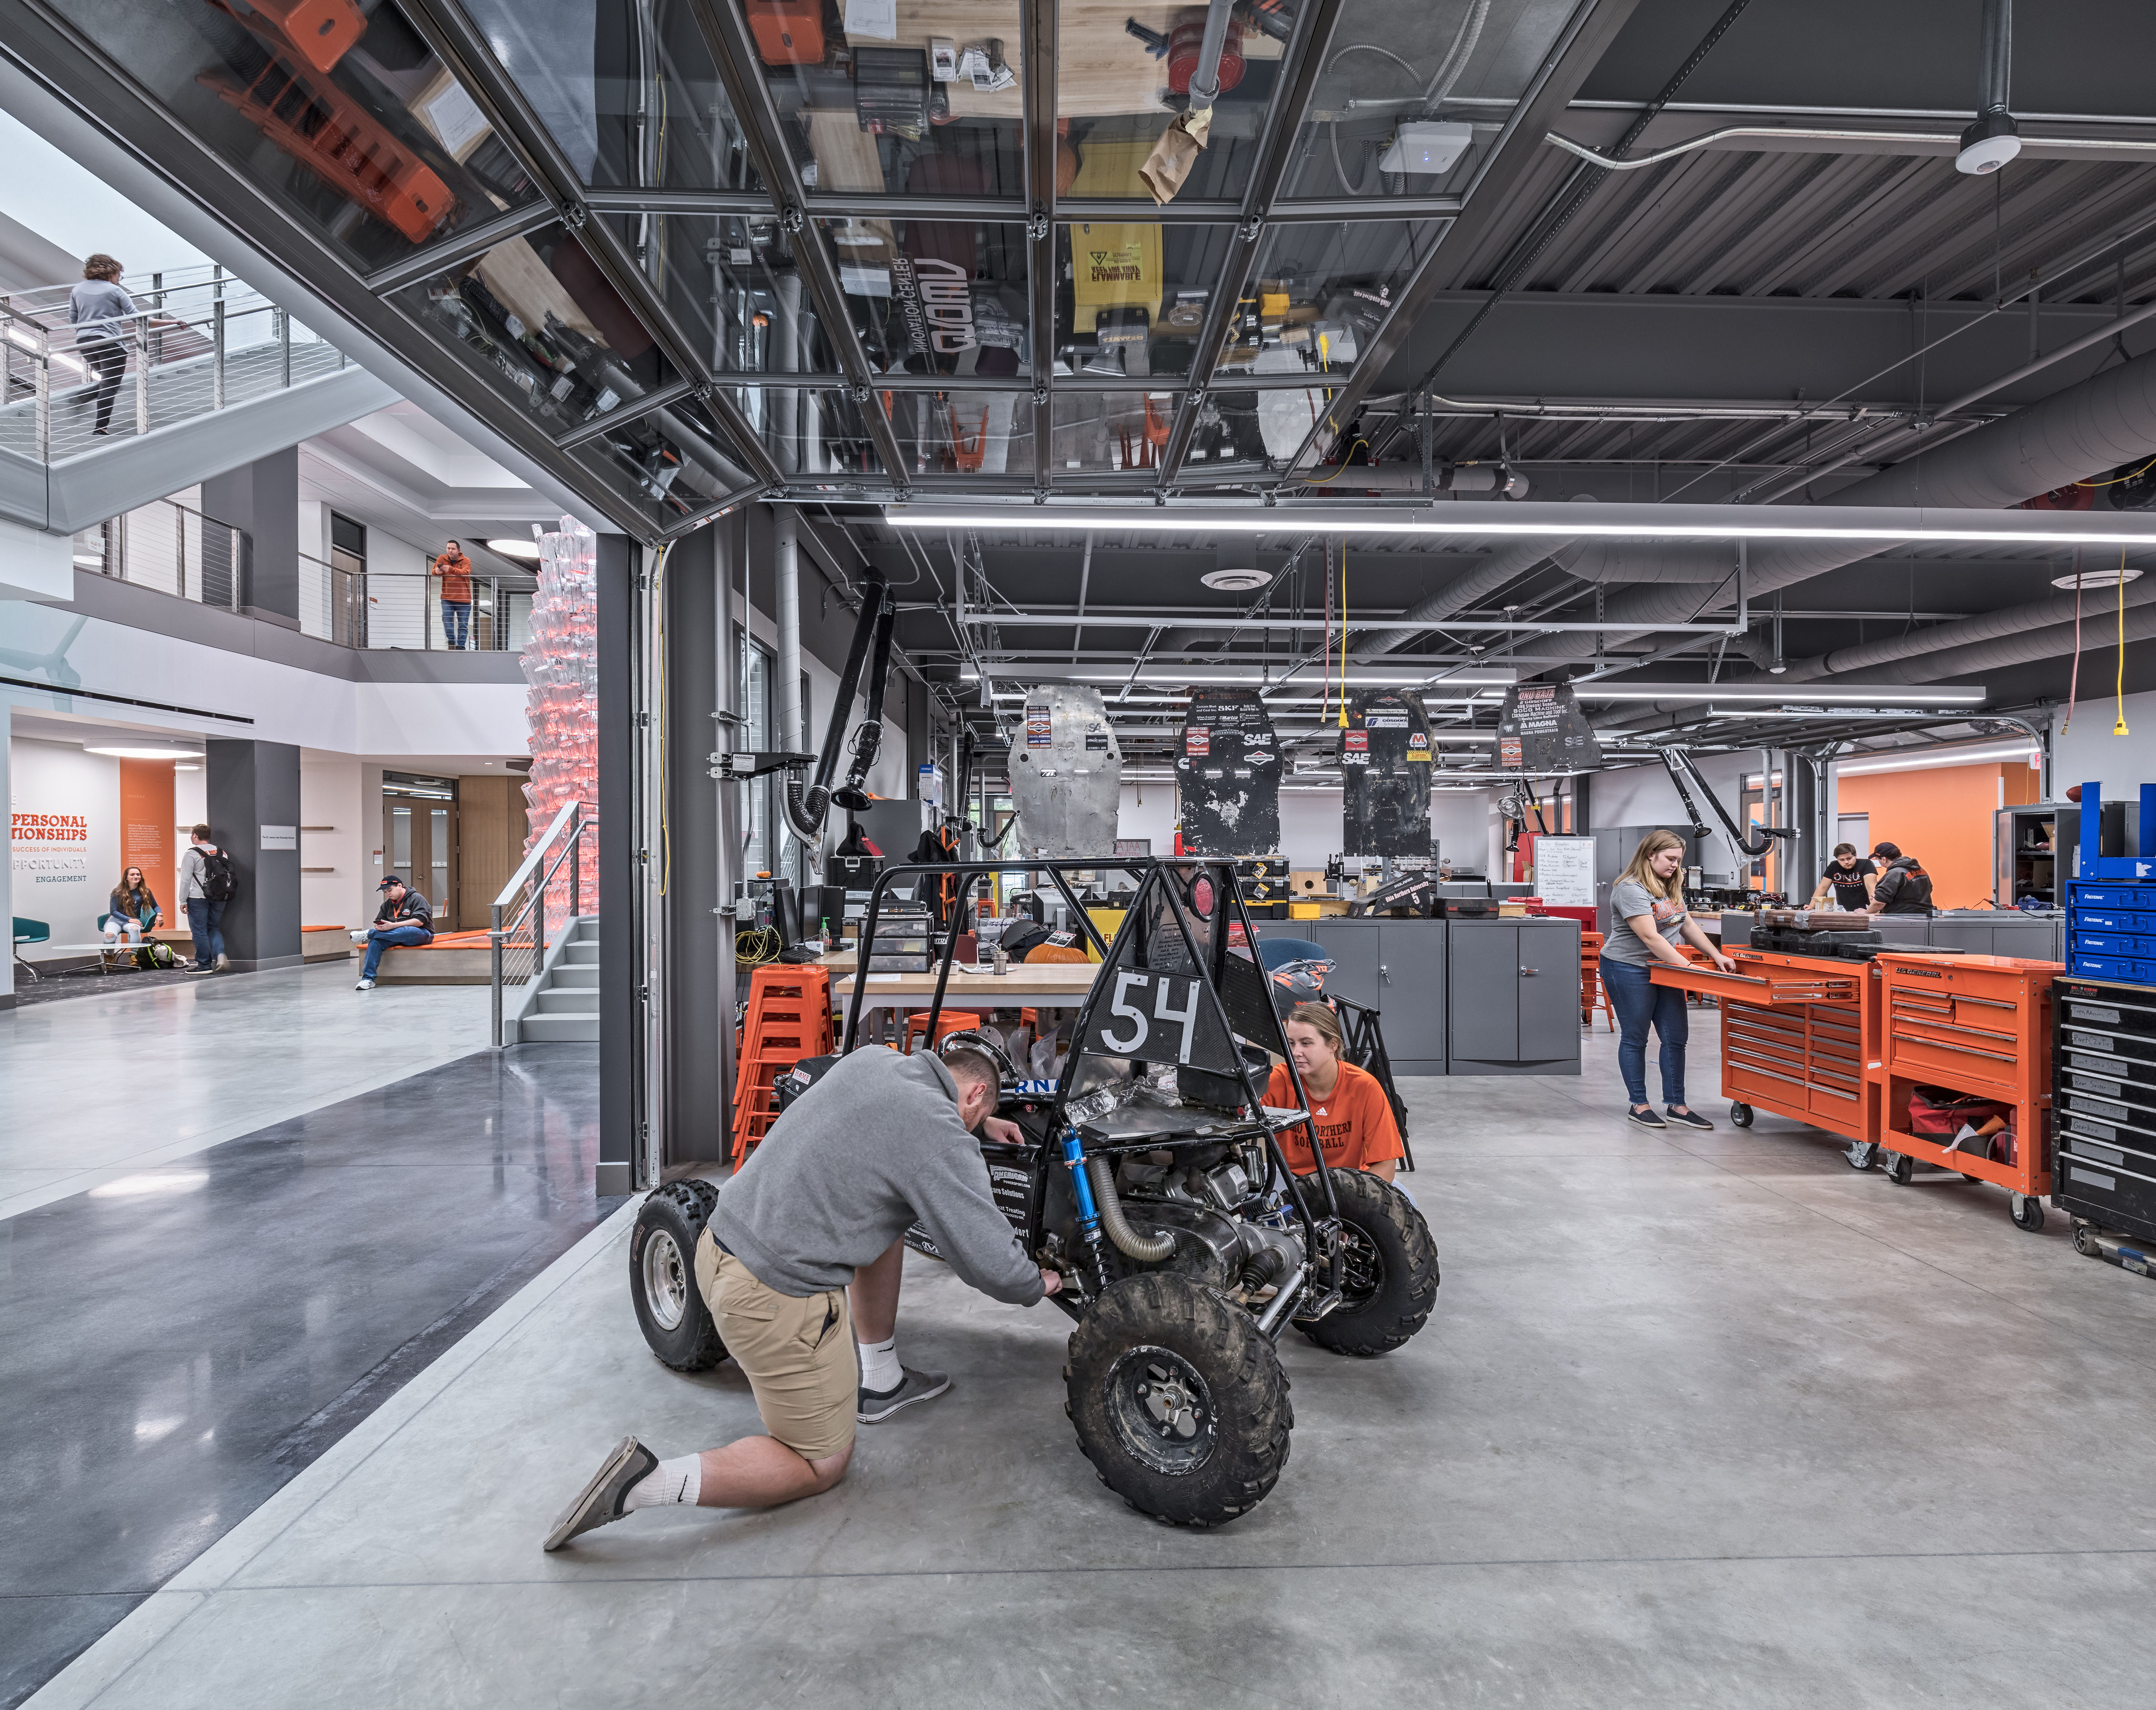 Moveable garage doors inside student studios allow visibility into the atrium